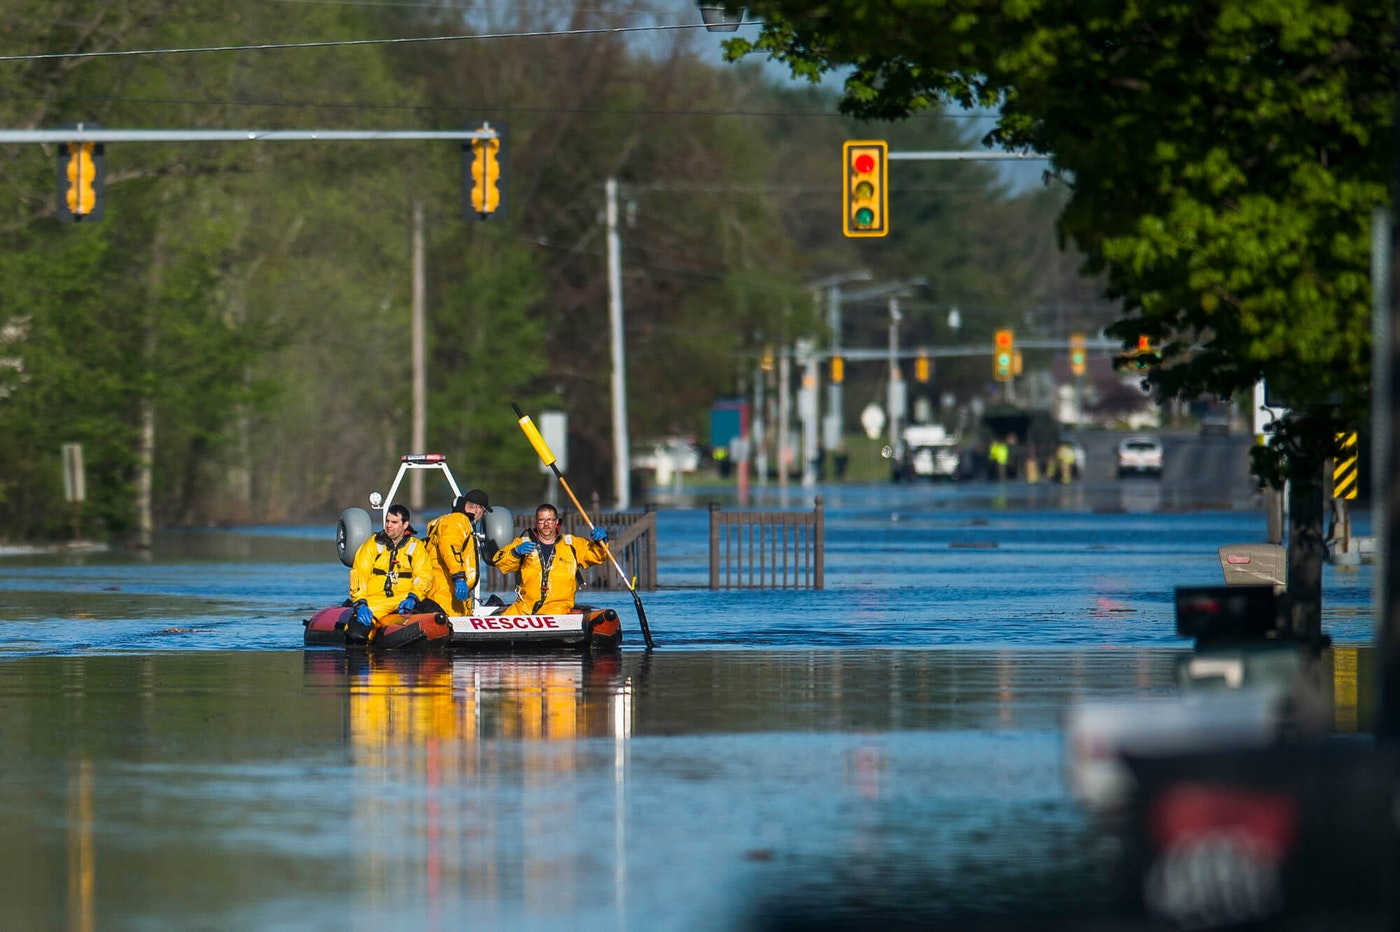 A search and rescue boat is deployed as Saginaw Road is closed at Drake due to water over the road while floodwater rises in Midland, Mich., Wednesday, May 20, 2020. (Katy Kildee/Midland Daily News via AP)